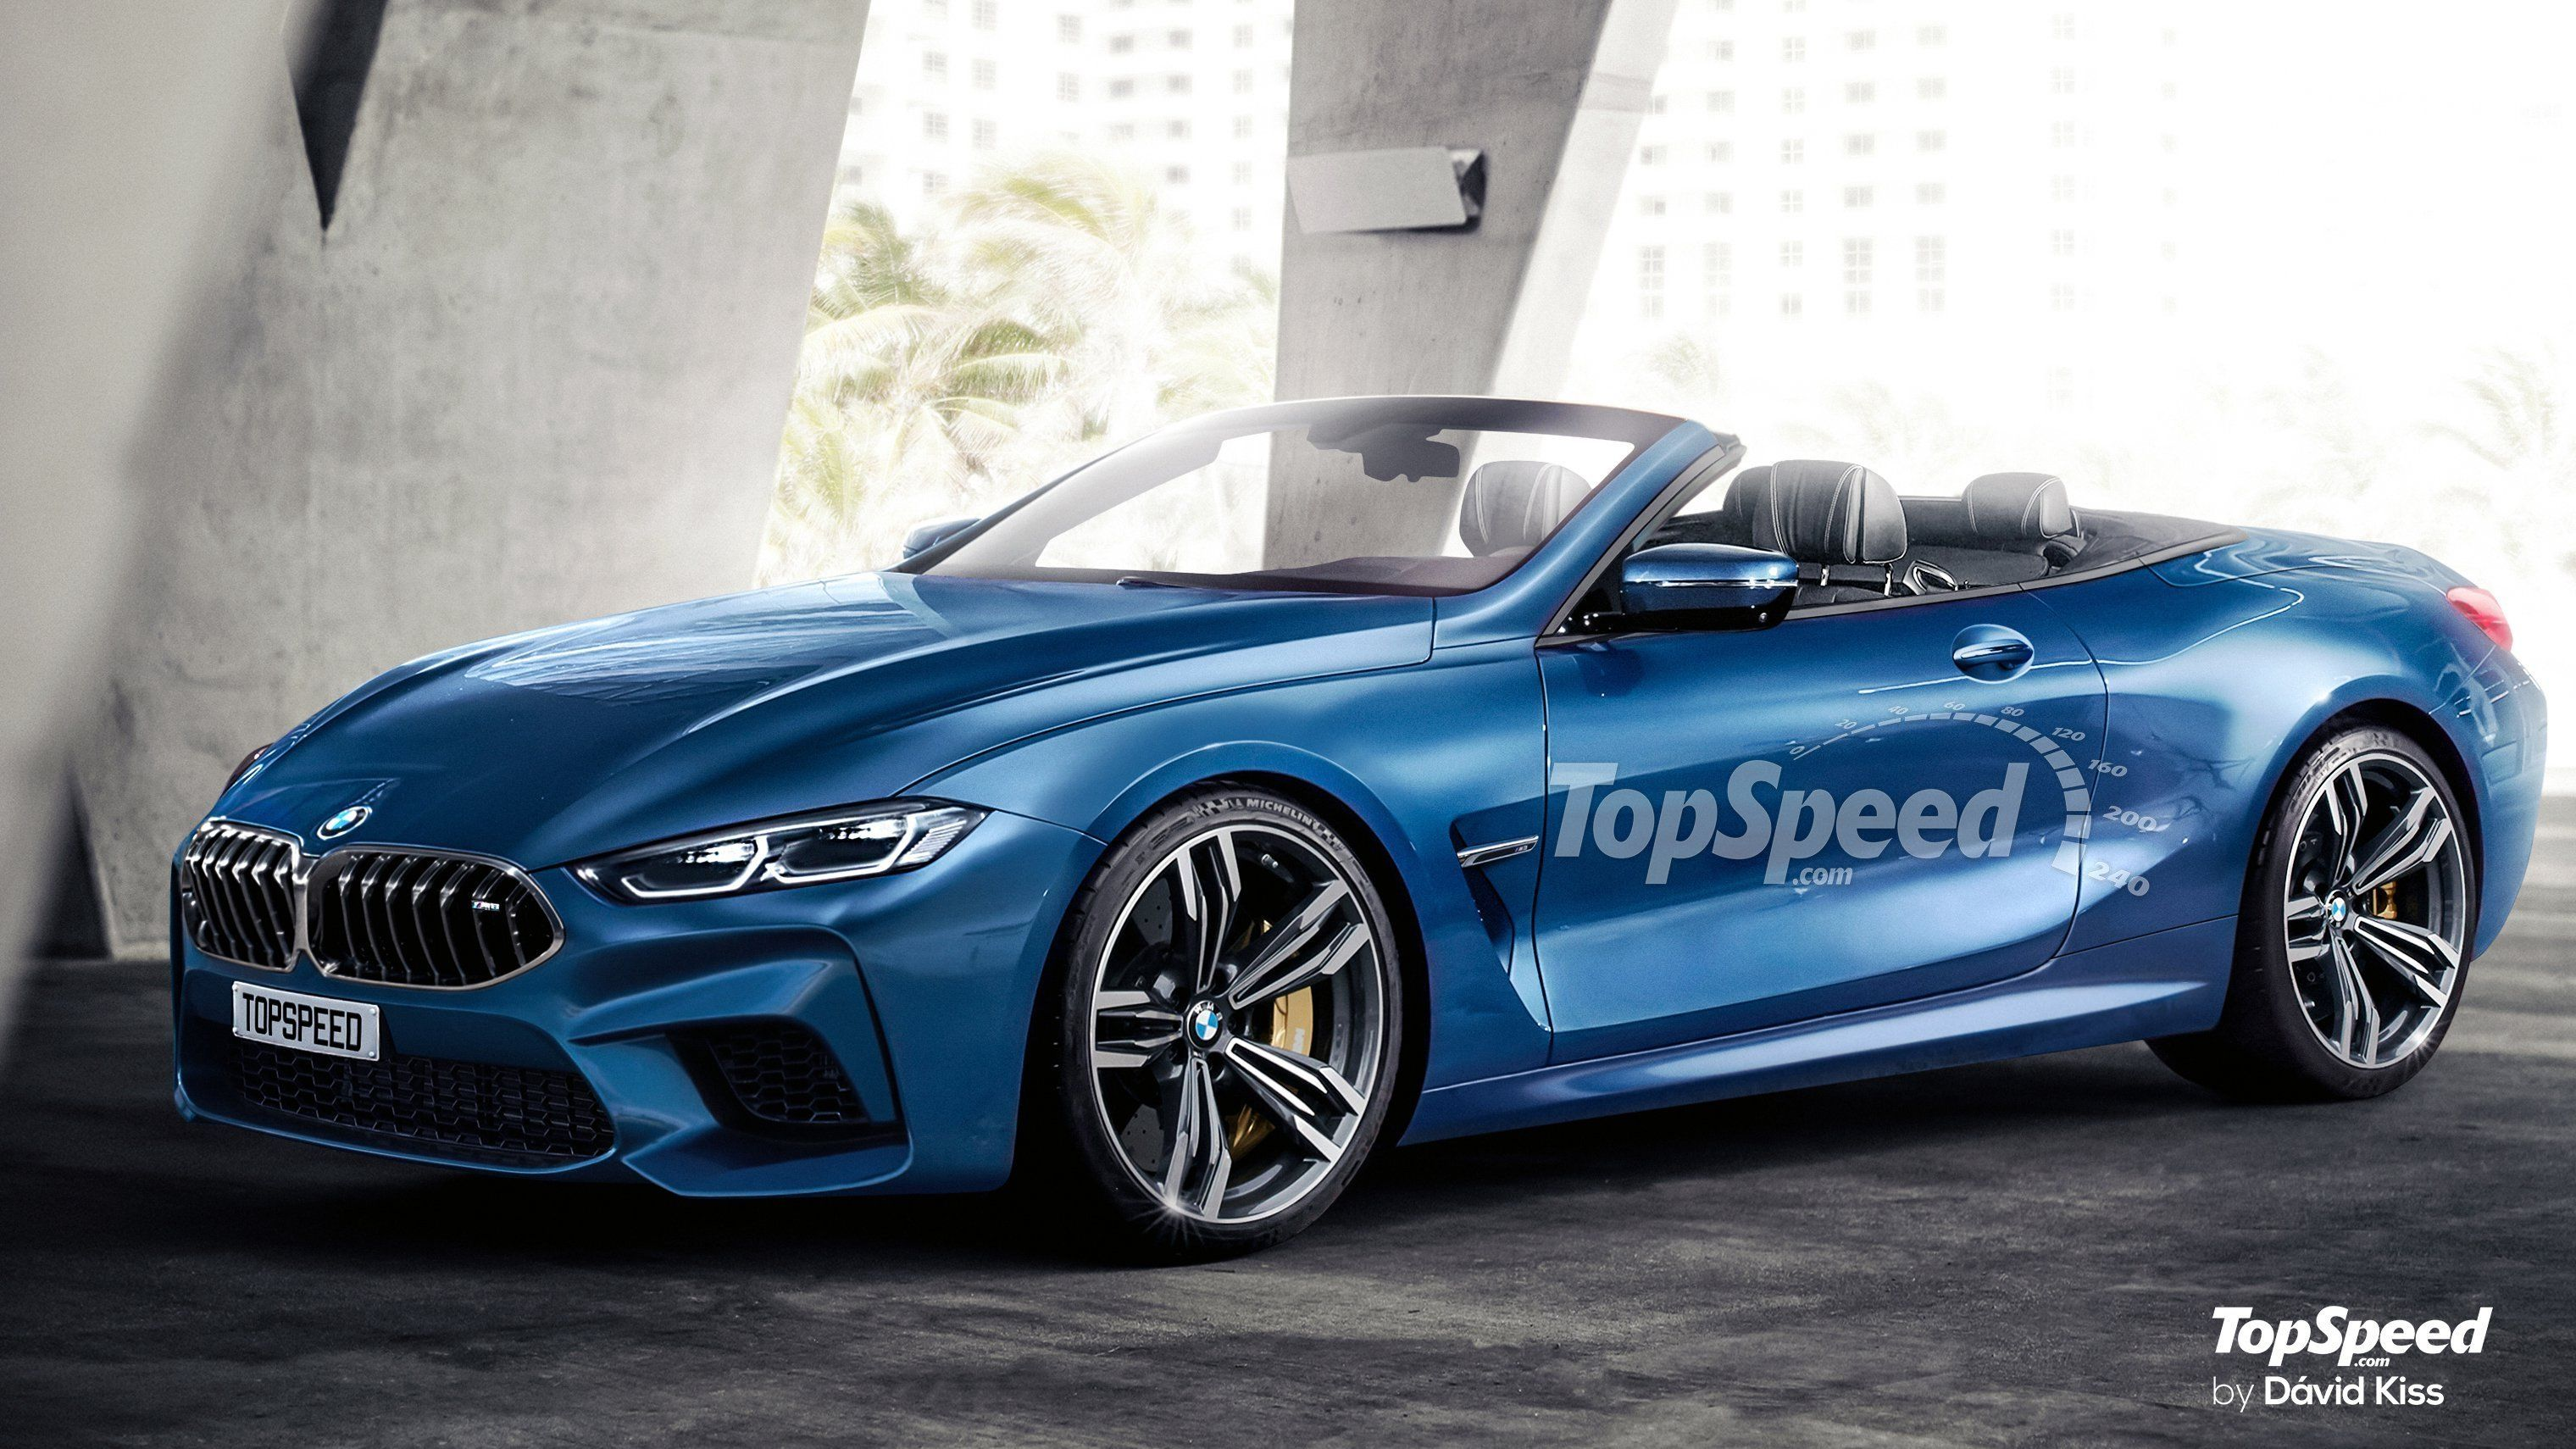 2020 Bmw M8 First Drive Bmw Bmw Convertible Bmw Models